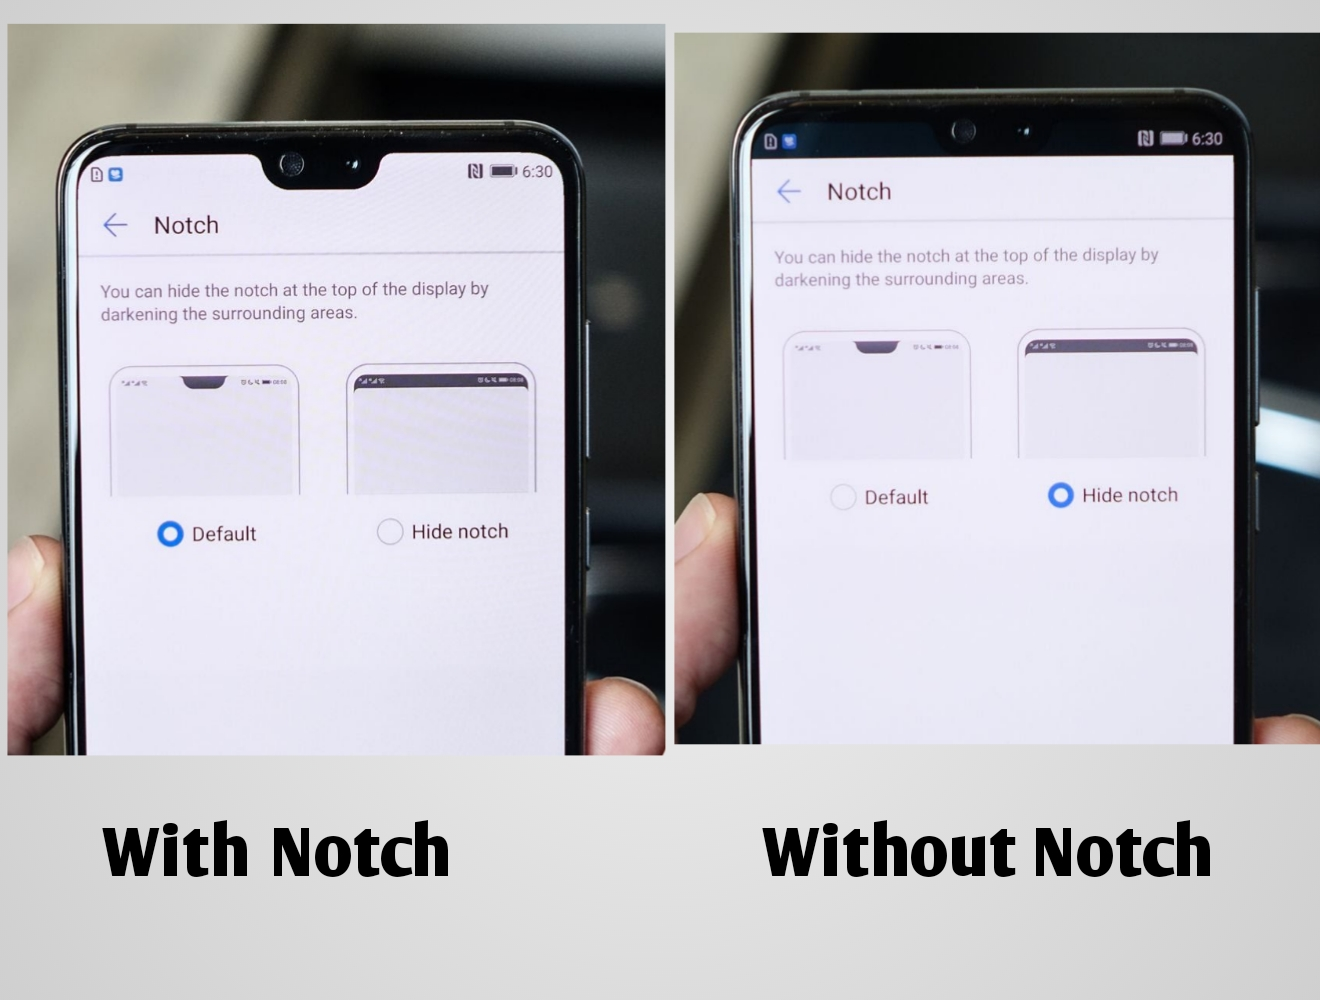 The P20 With, and without Notches